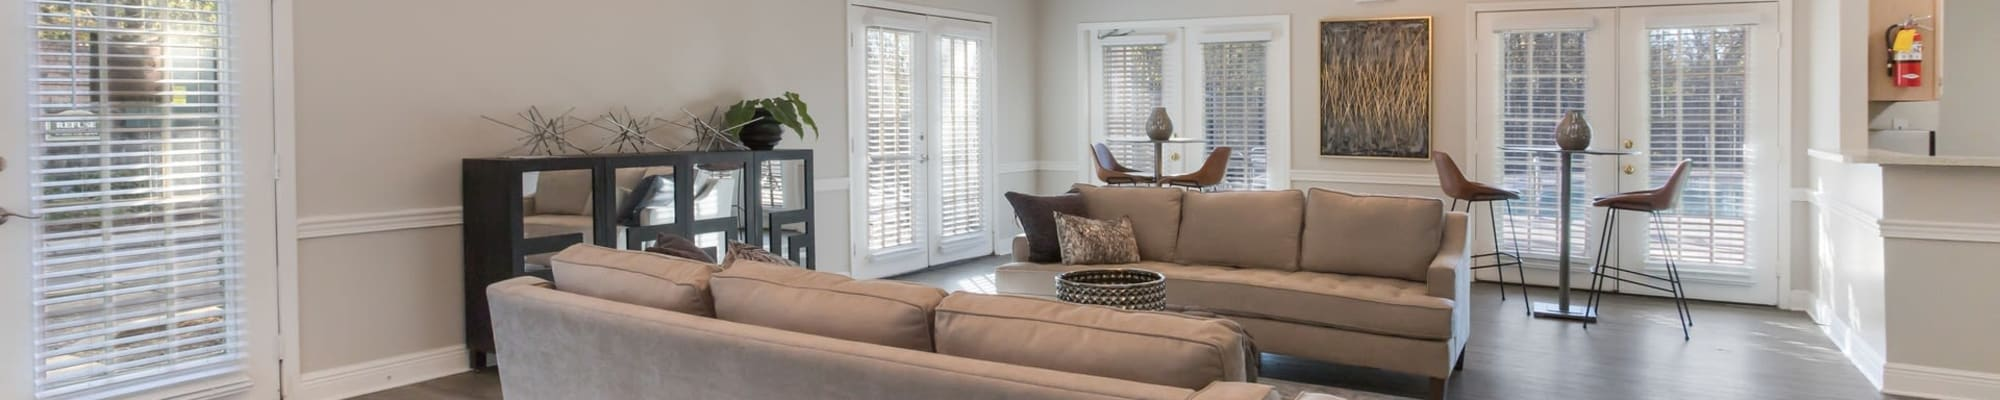 Contact Bristol Park Apartments in Jackson, Mississippi